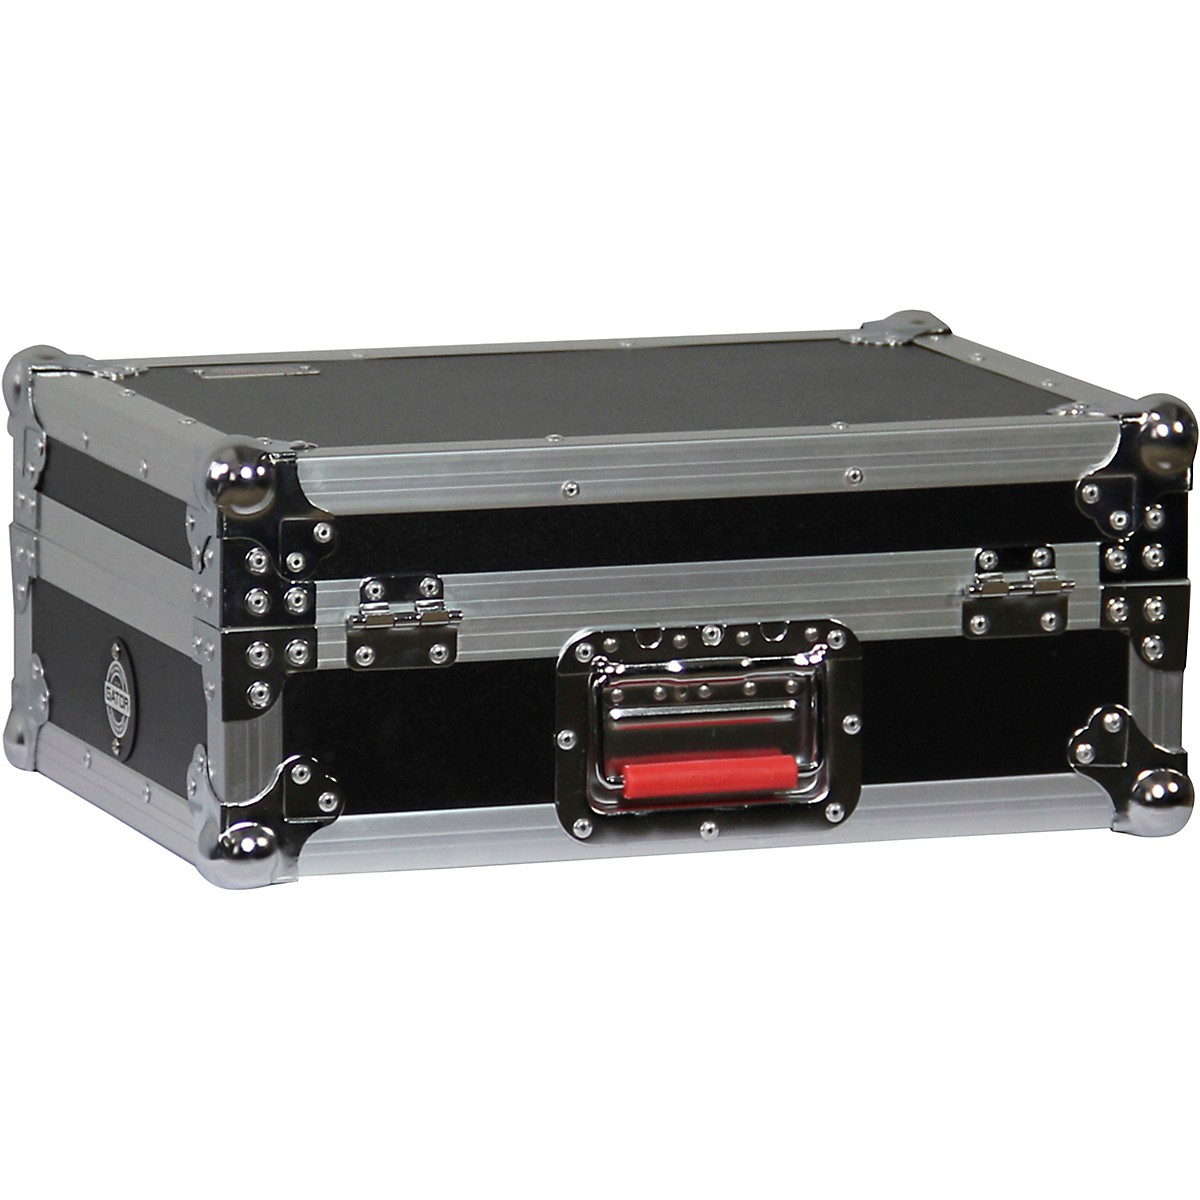 Gator G-Tour DJ CD 2000 ATA Road Flight Case for Large-Format Media Players, CDJ-2000NXS2